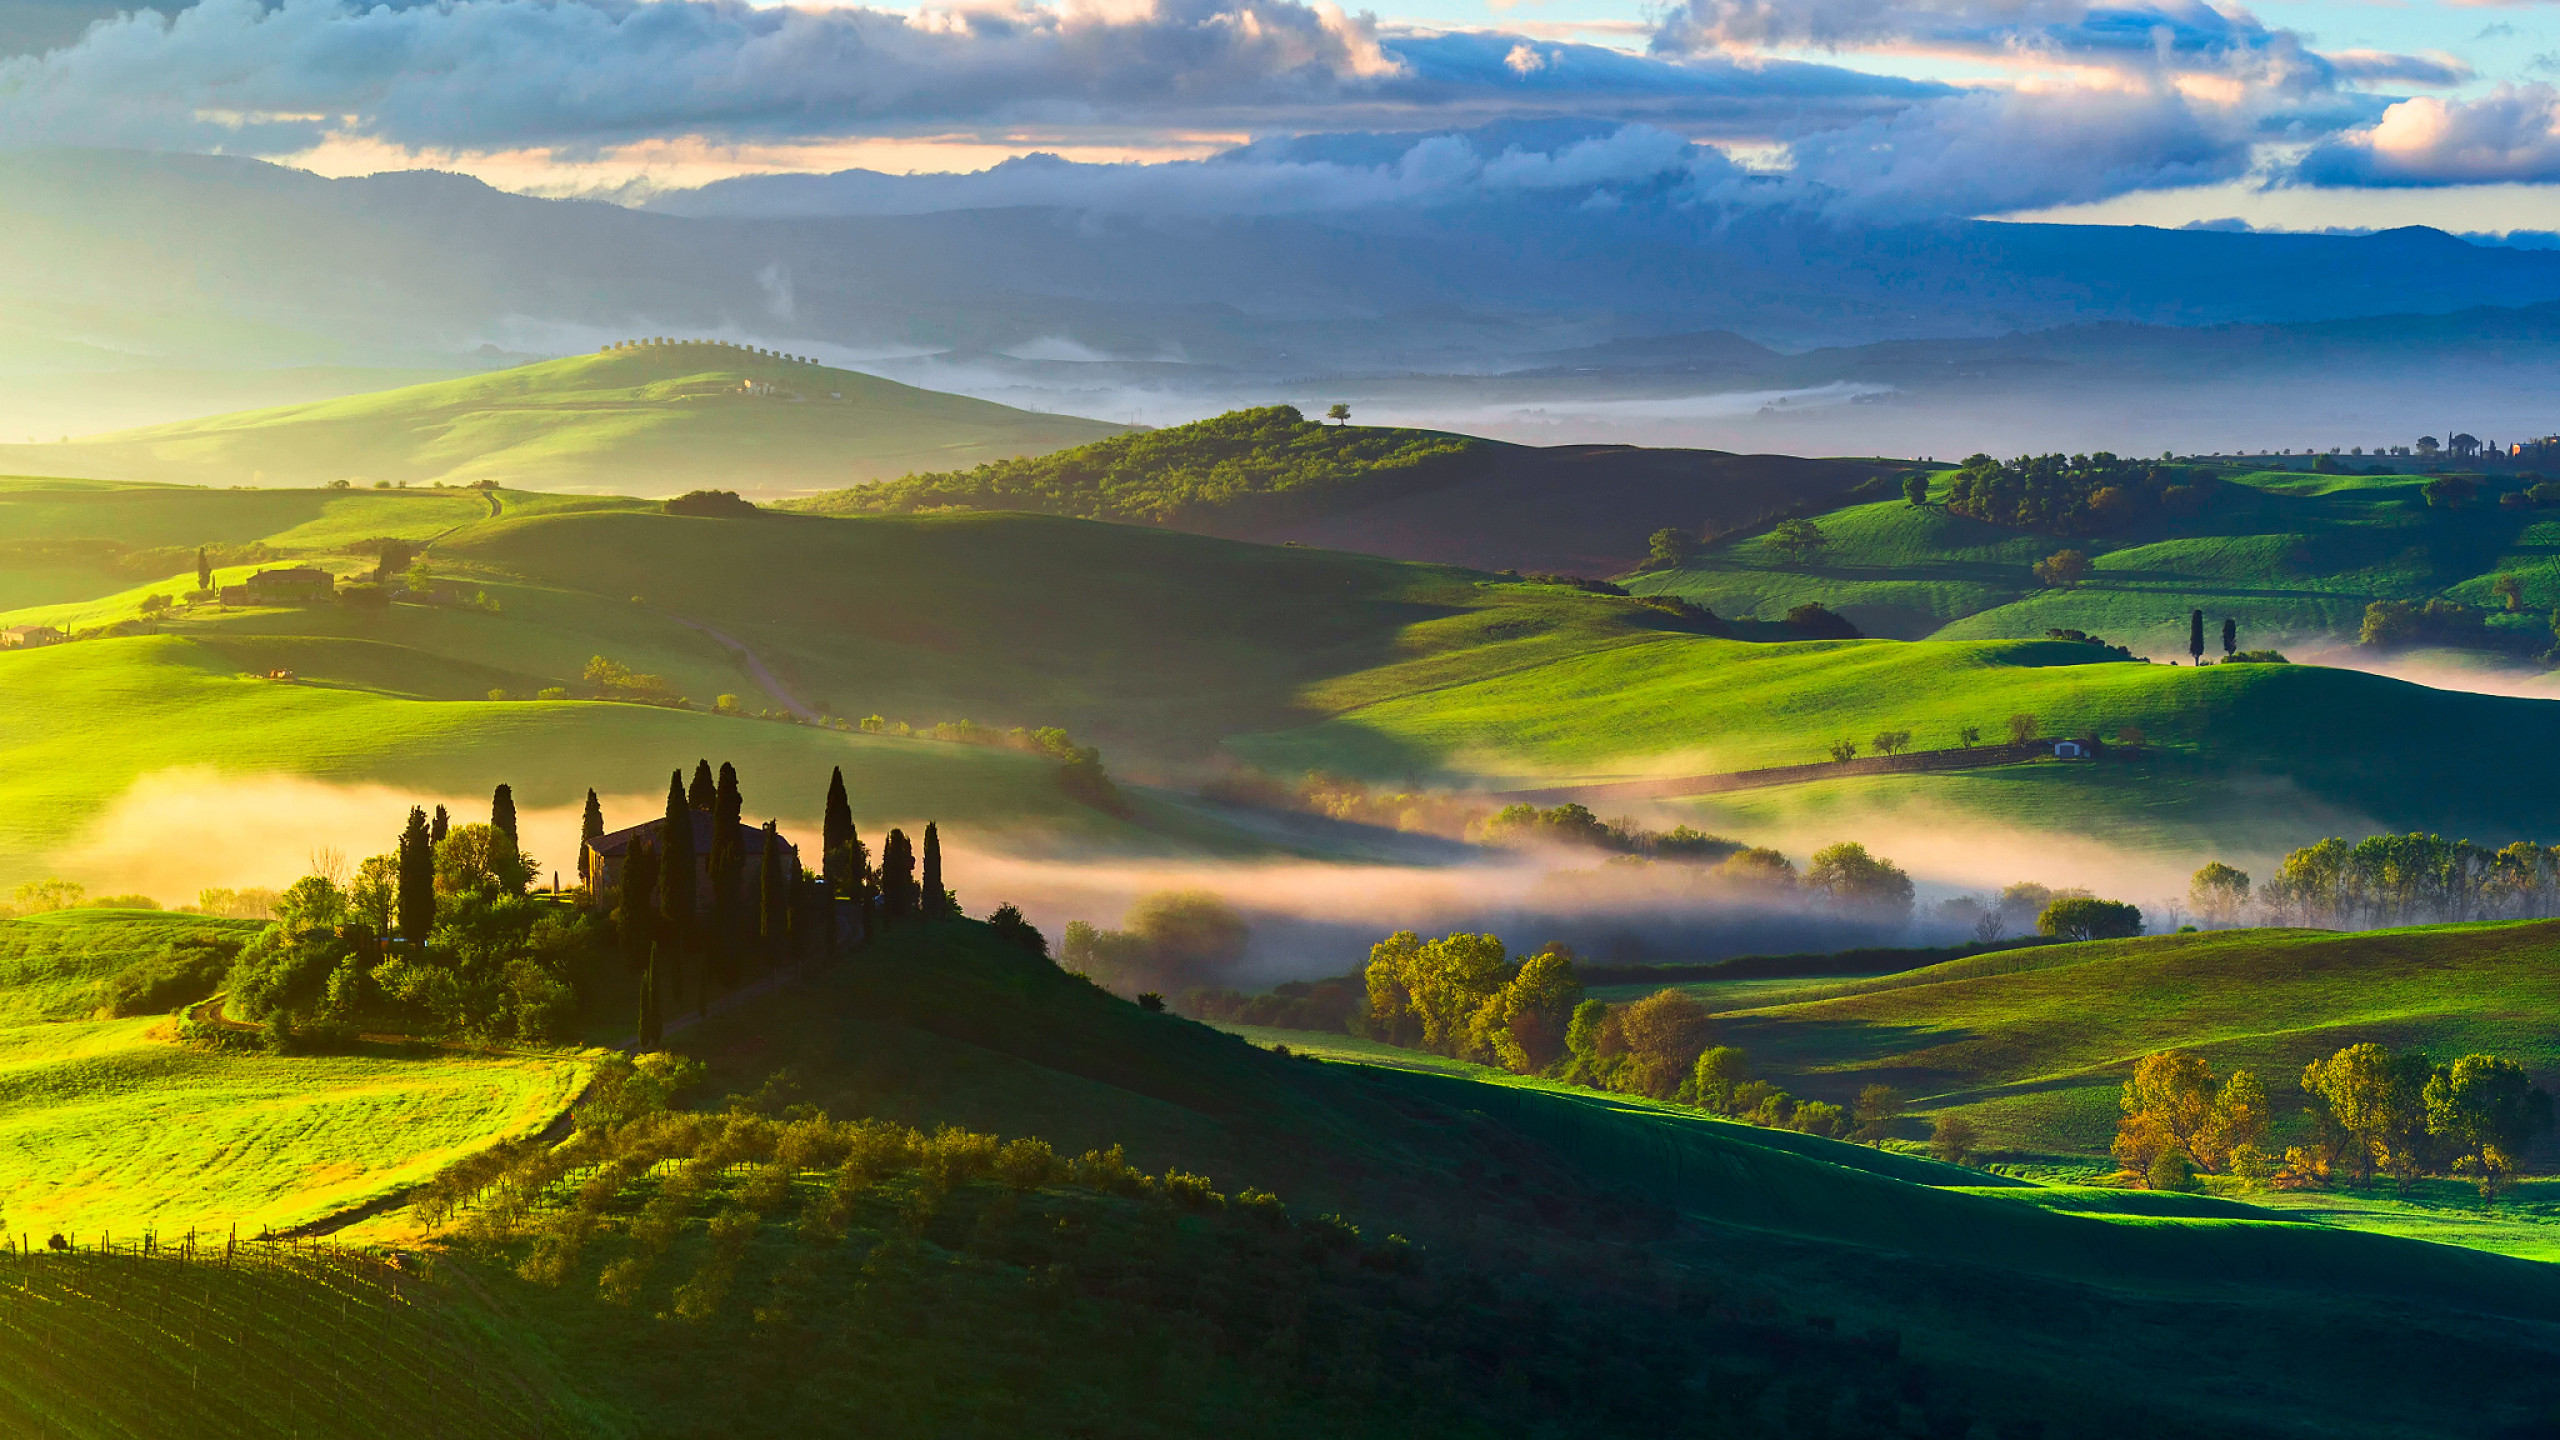 2560x1440  Wallpaper italy, tuscany, fields, trees, top view, fog